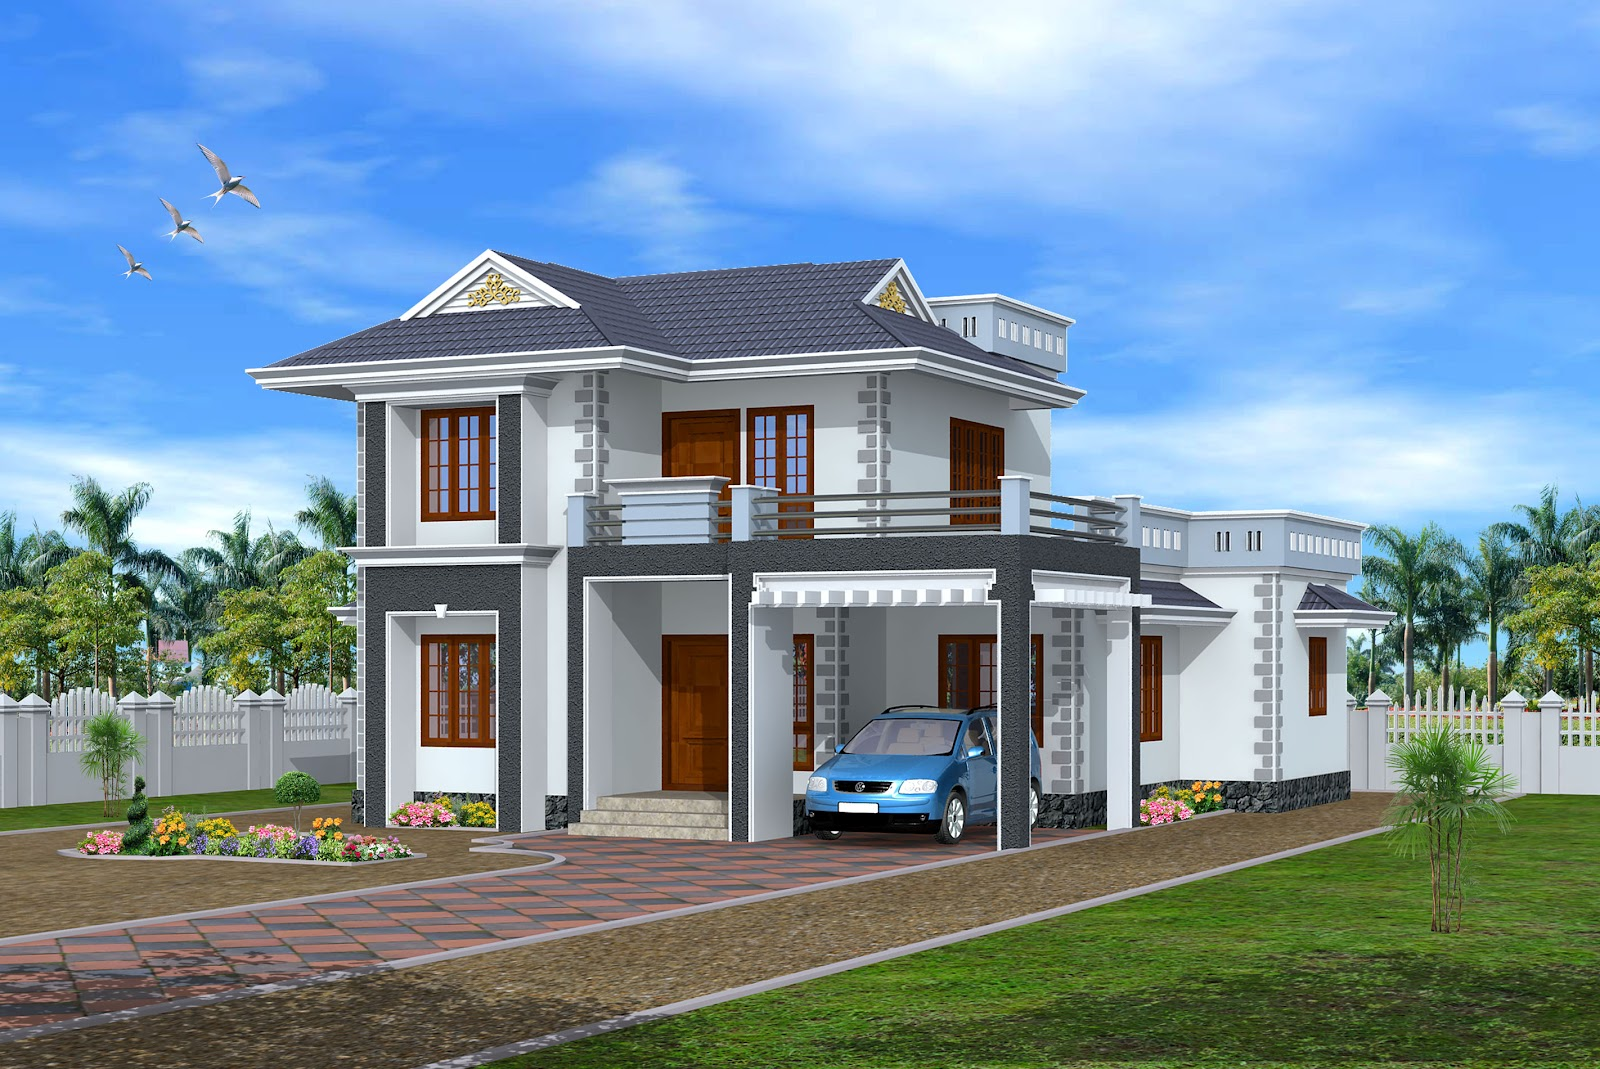 New home designs latest modern homes exterior designs views for New homes designs